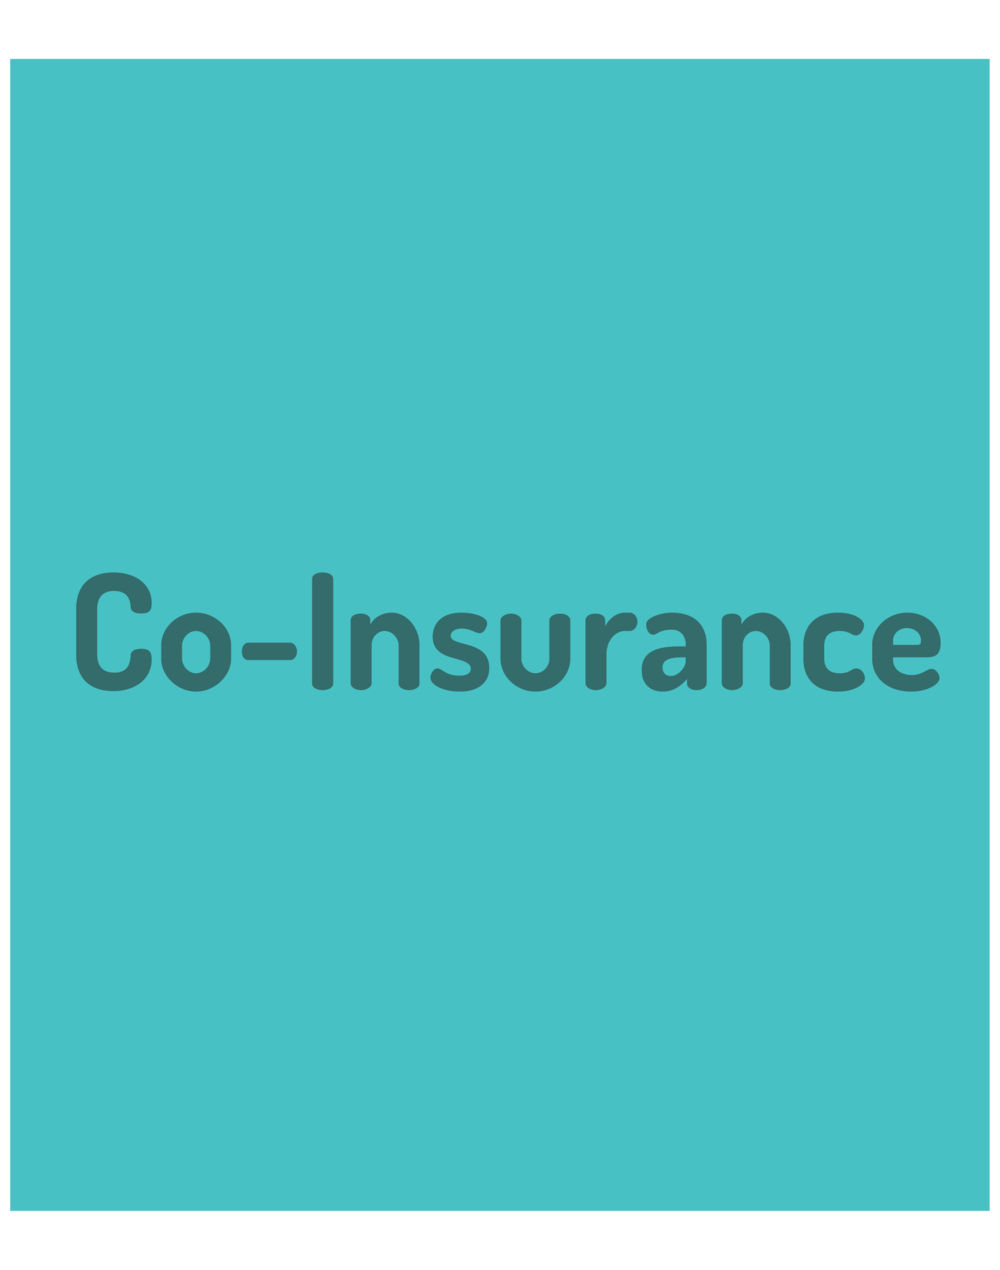 CO-INSURANCE:  Co-insurance is a  part or percentage (%) of the total cost of some health services that you pay after you have met your deductible for the year.  For example, if you have surgery, your health insurance would pay for most of it and you would for less of it.